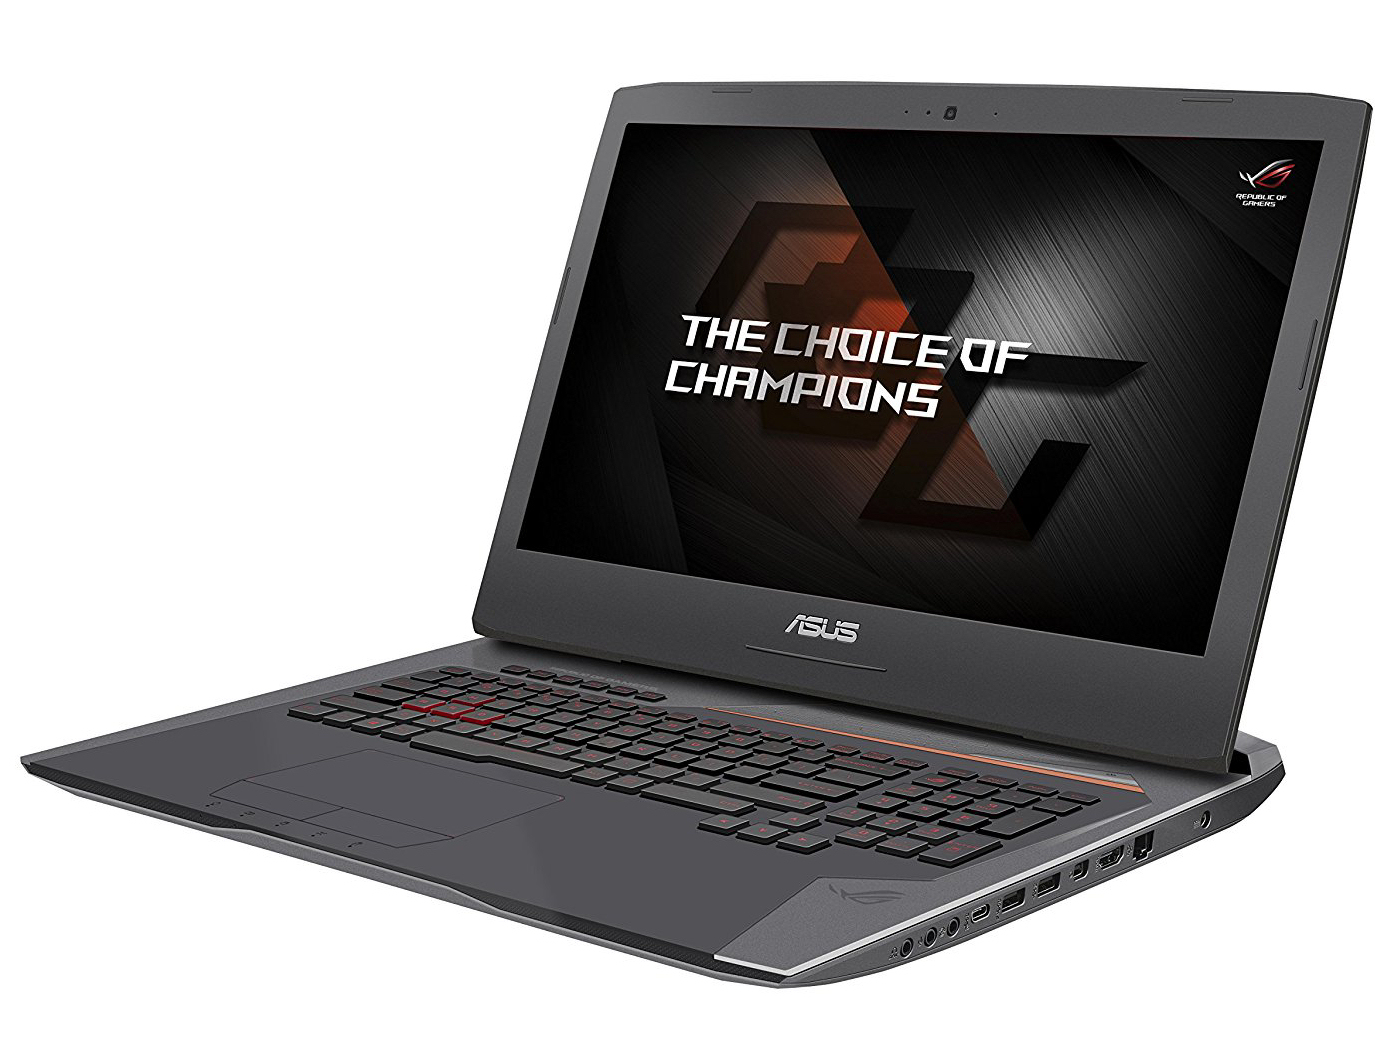 ASUS ROG G752VS Intel WLAN Vista